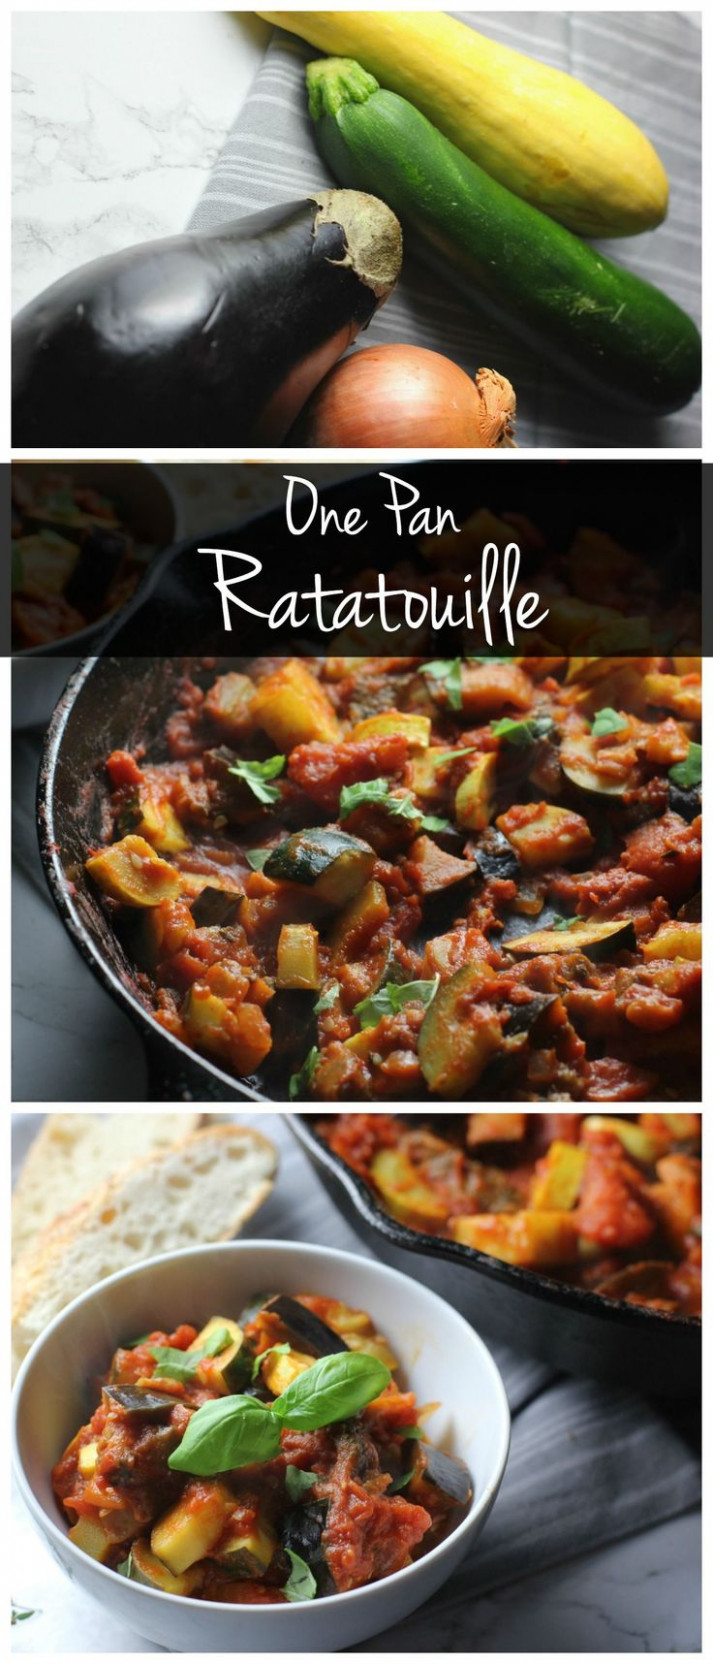 25+ best ideas about Ratatouille Recipe on Pinterest ...